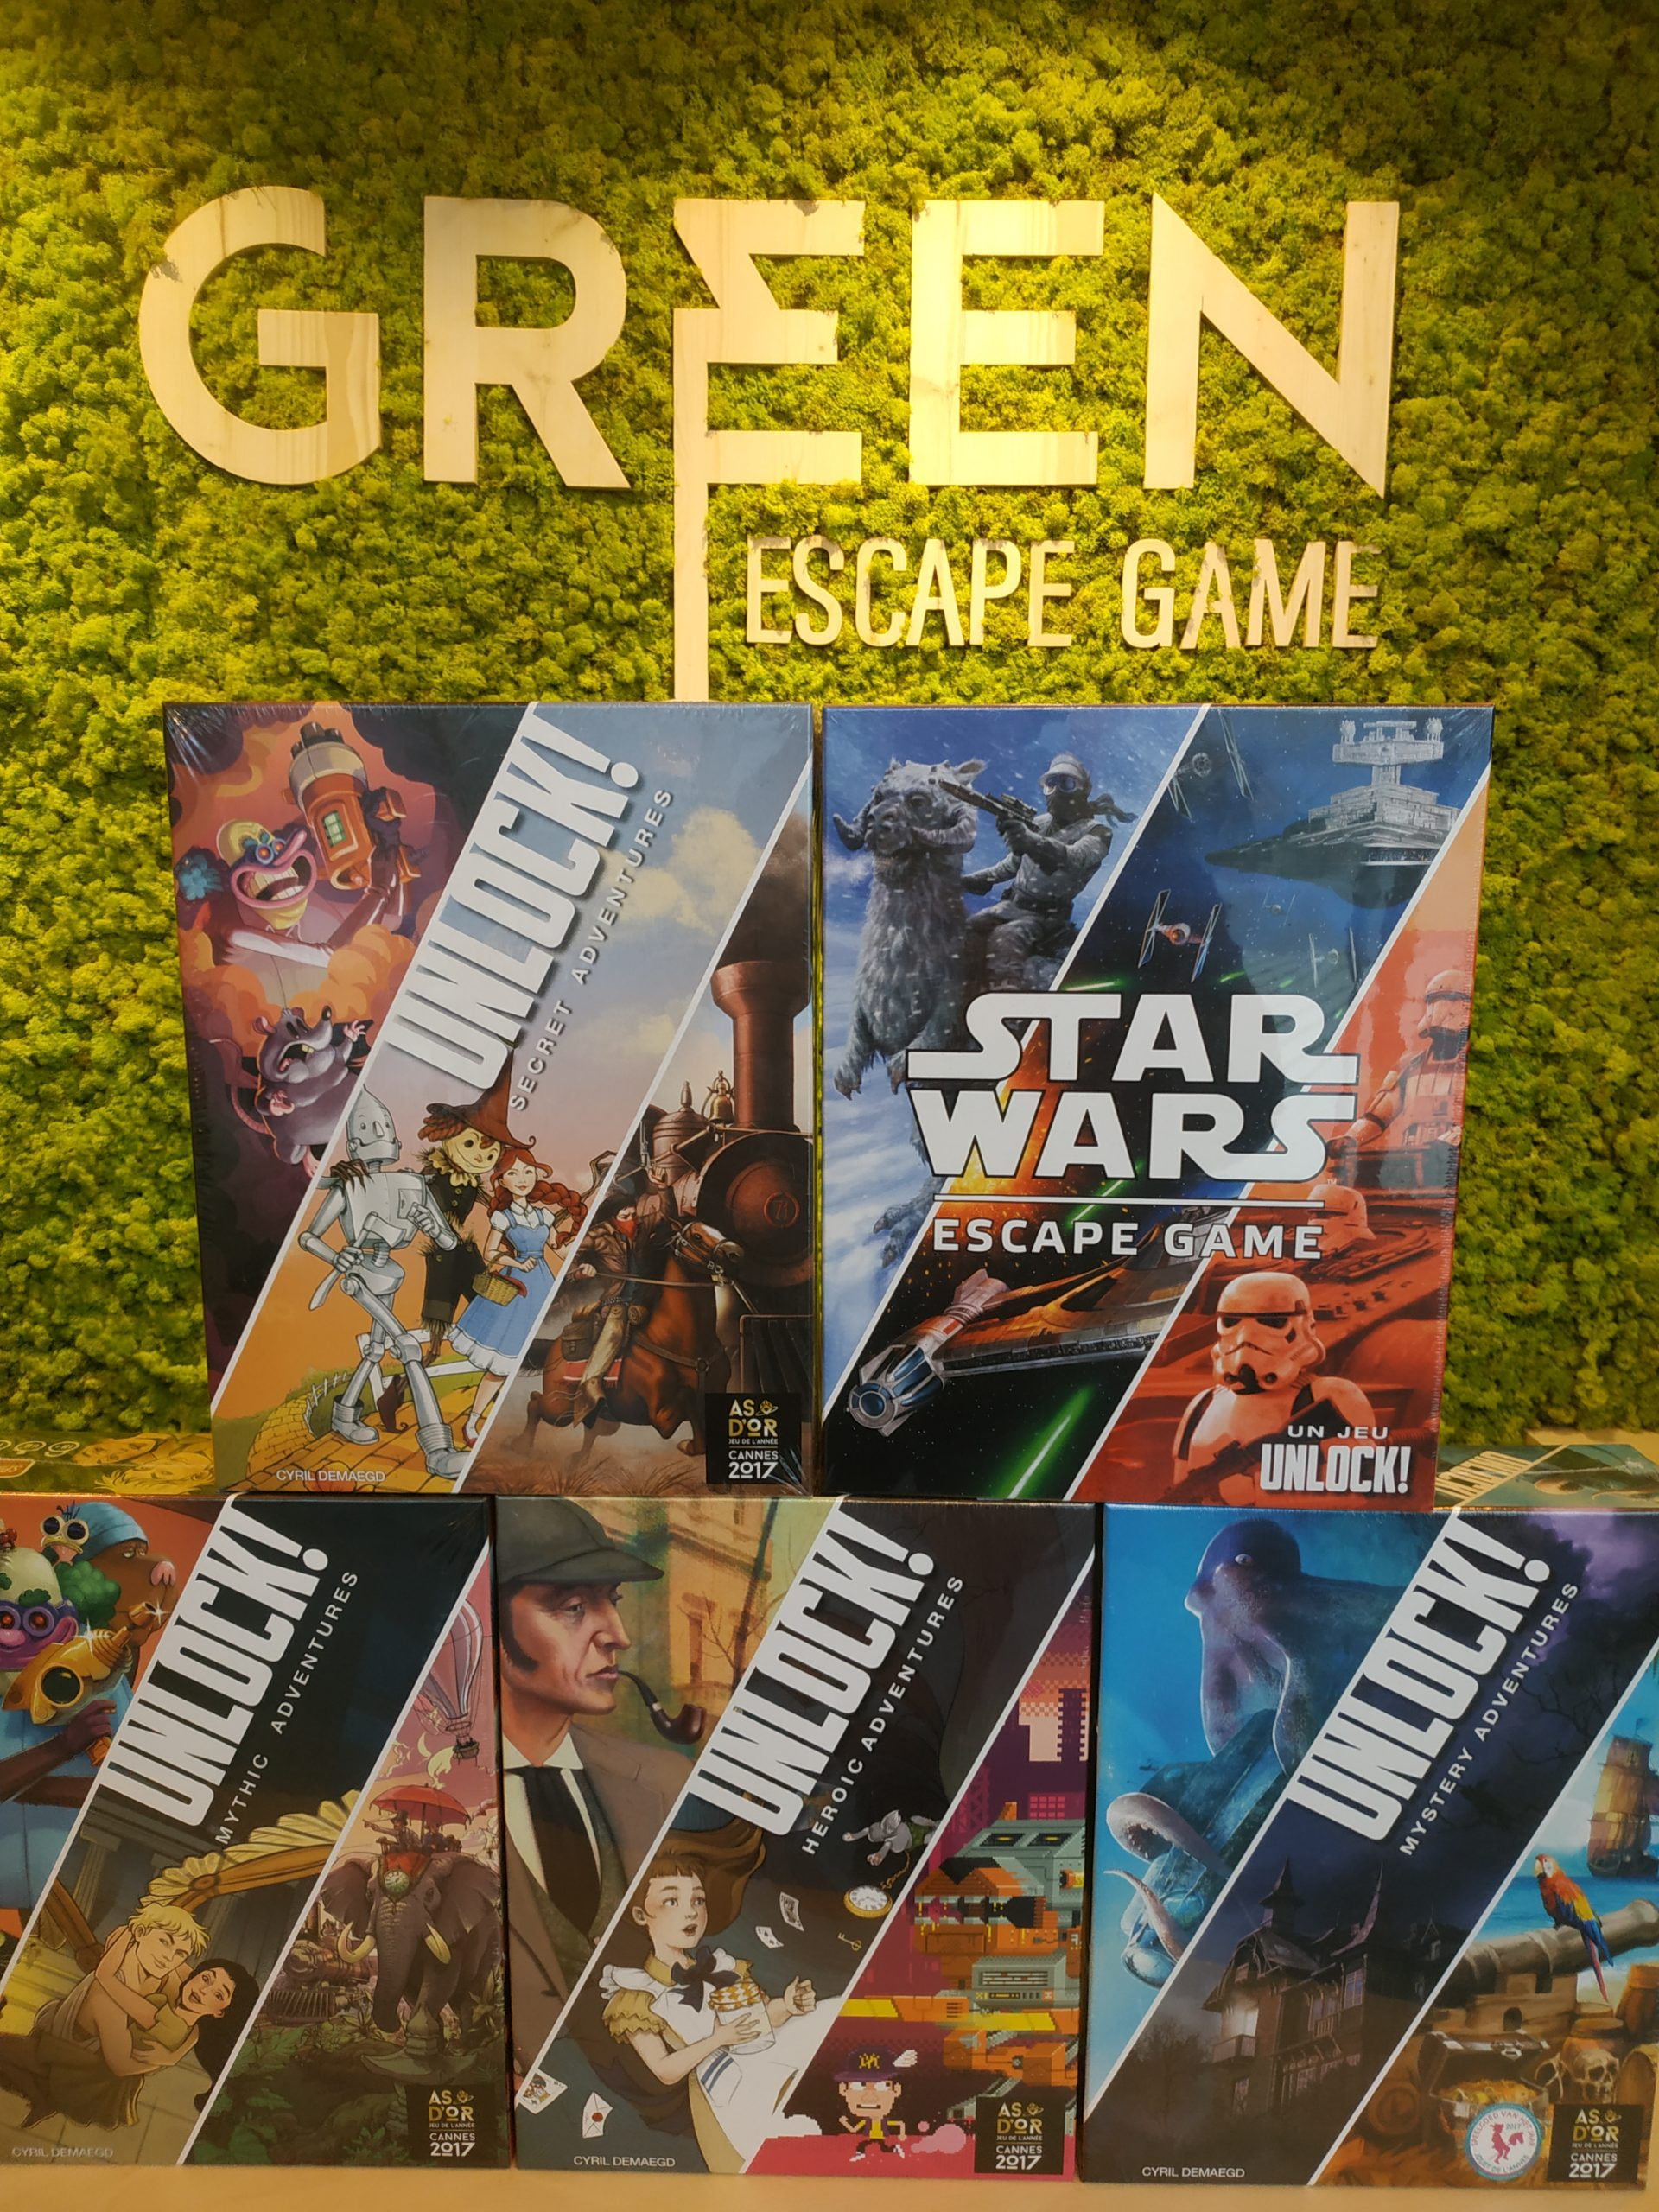 Exposition et ventes de jeux THE GREEN ESCAPE GAME